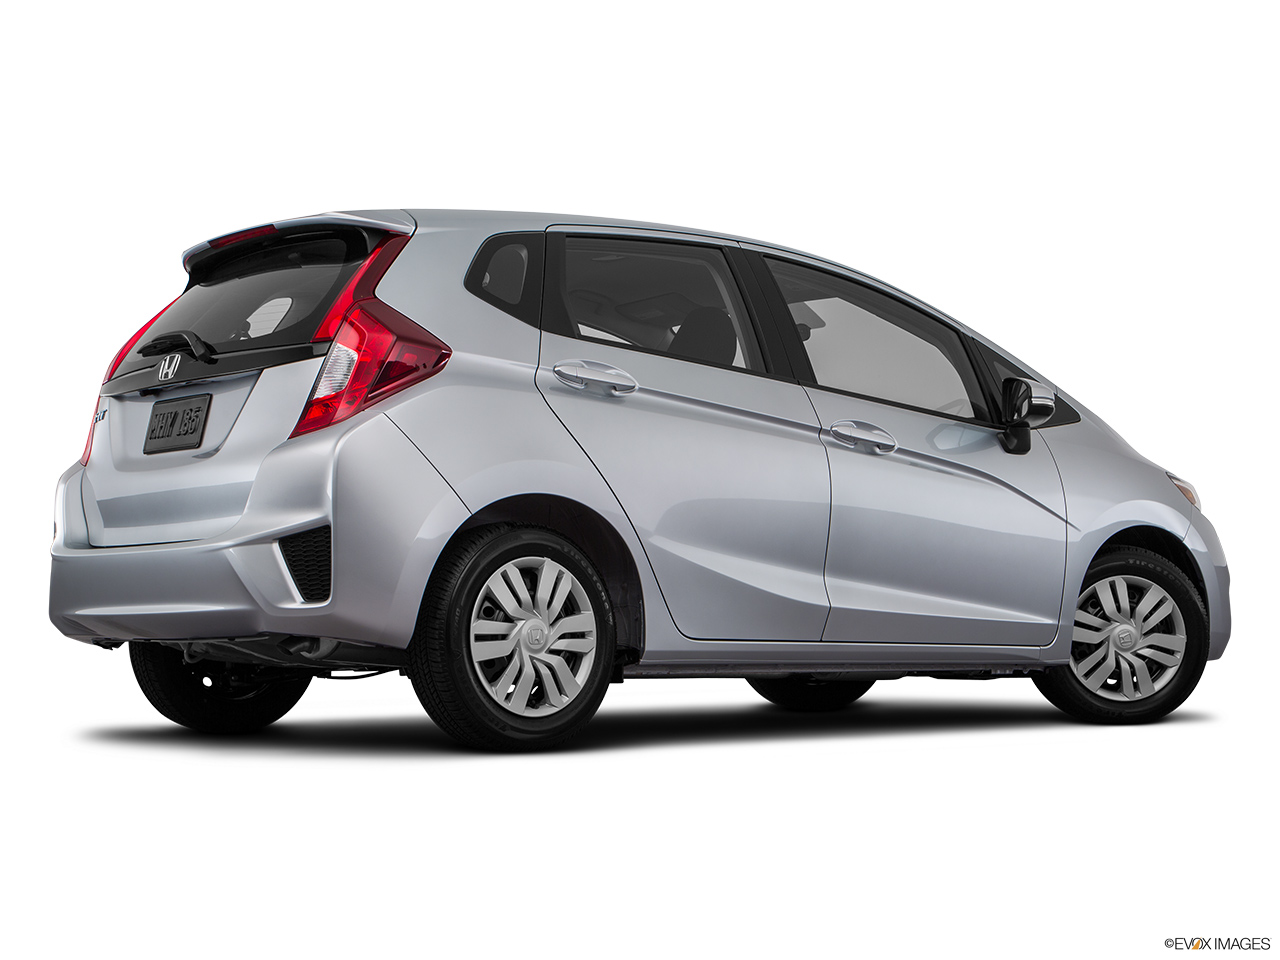 Car pictures list for honda jazz 2016 1 5 lx uae for Ocean honda weymouth